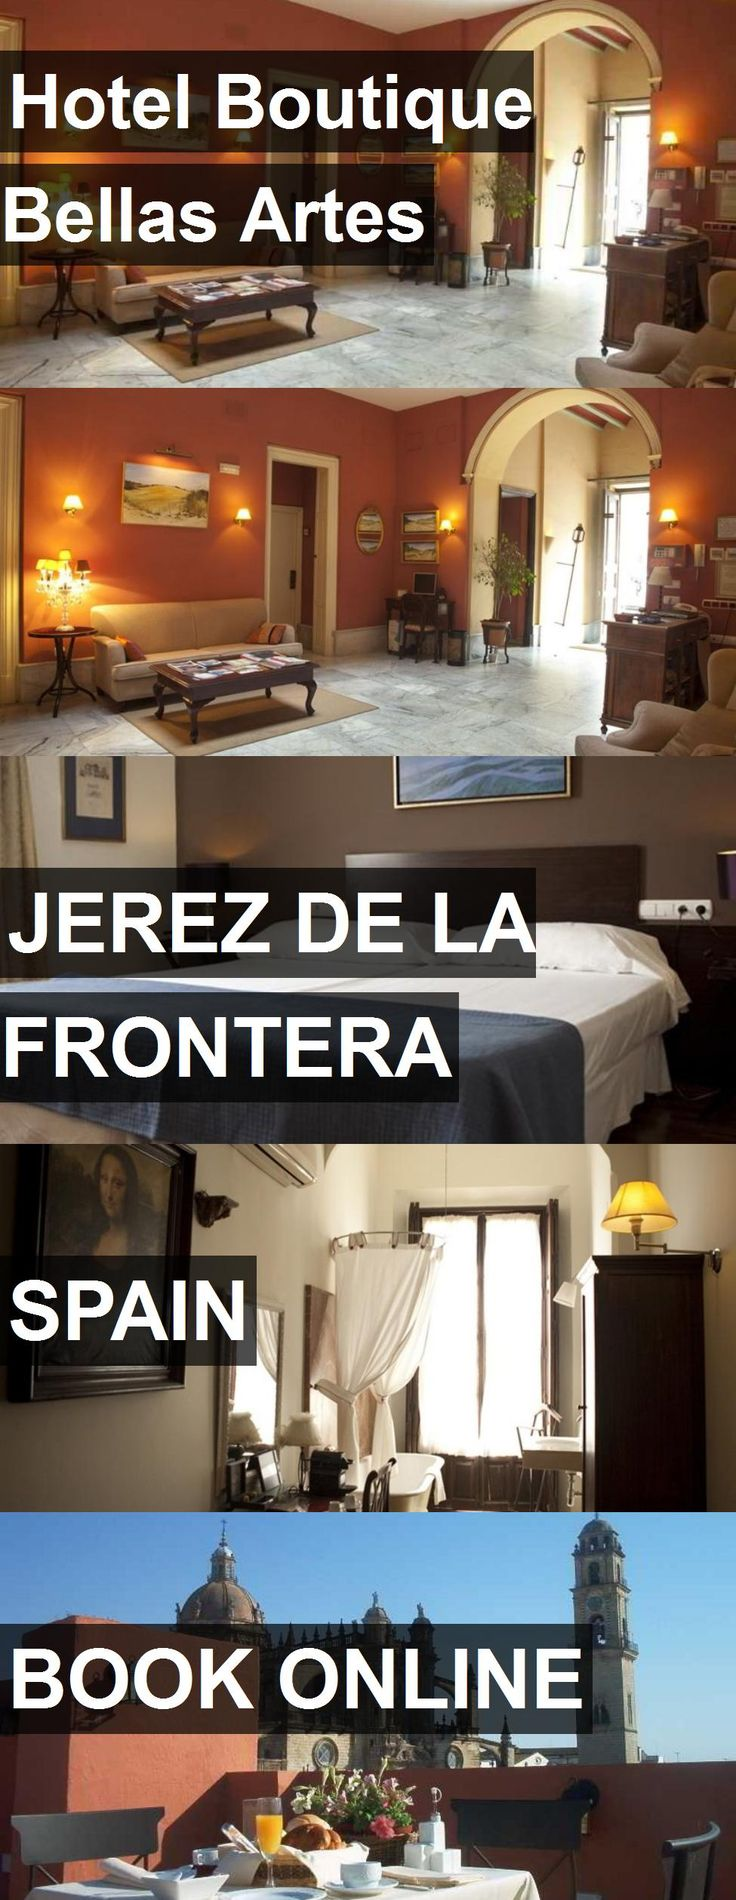 Hotel Boutique Bellas Artes in Jerez de la Frontera, Spain. For more information, photos, reviews and best prices please follow the link. #Spain #JerezdelaFrontera #travel #vacation #hotel